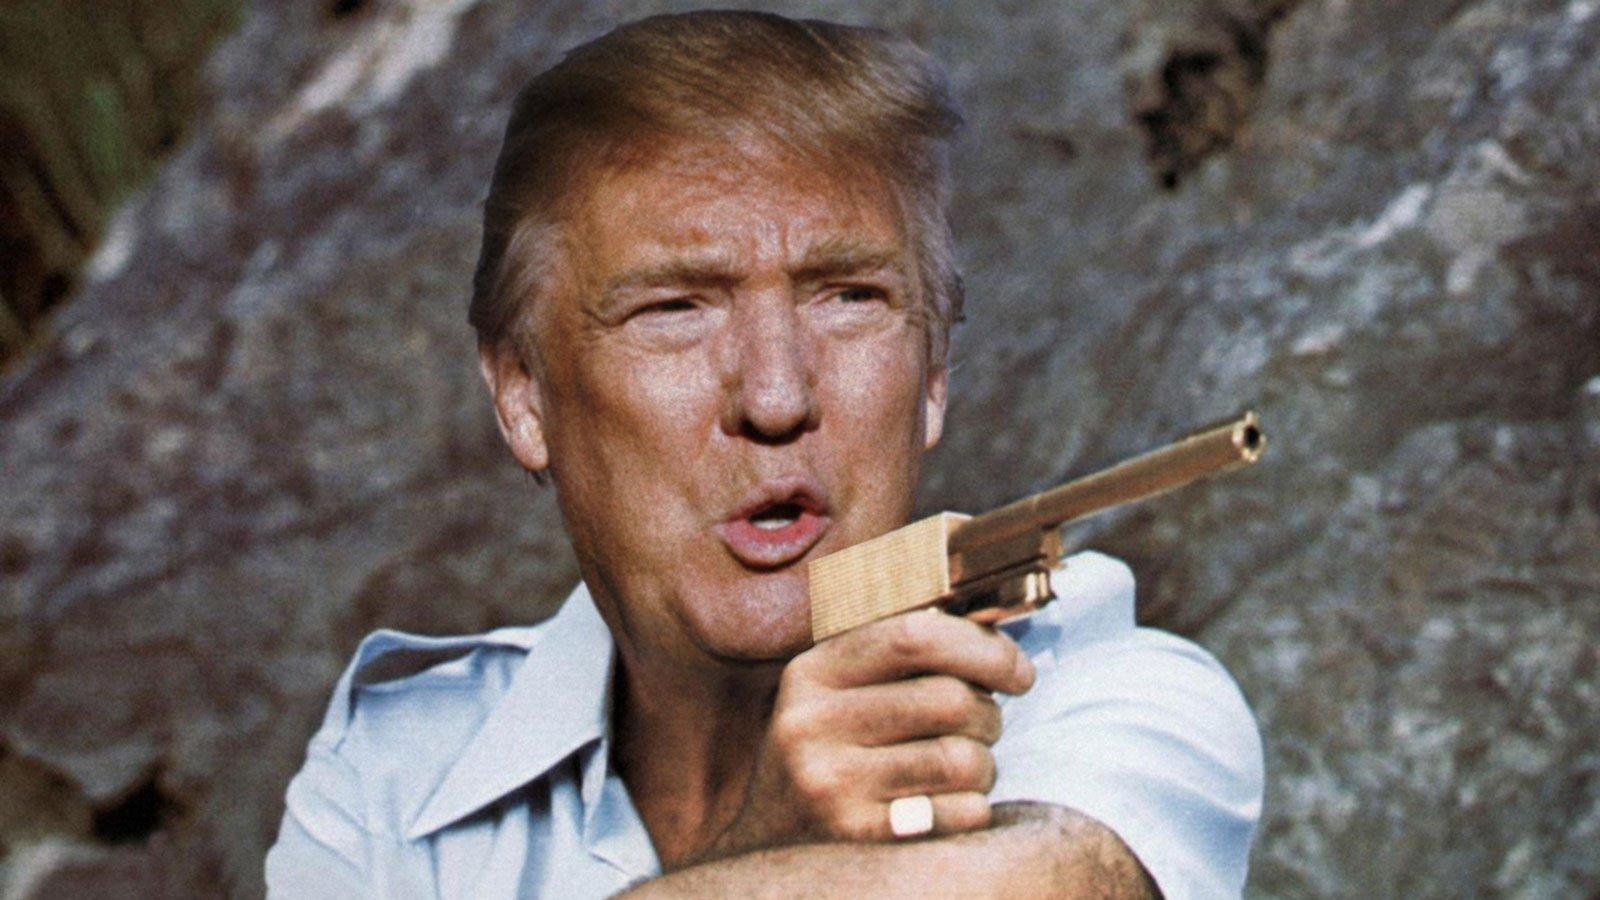 Donald Trump: 'I Always Carry a Gun'